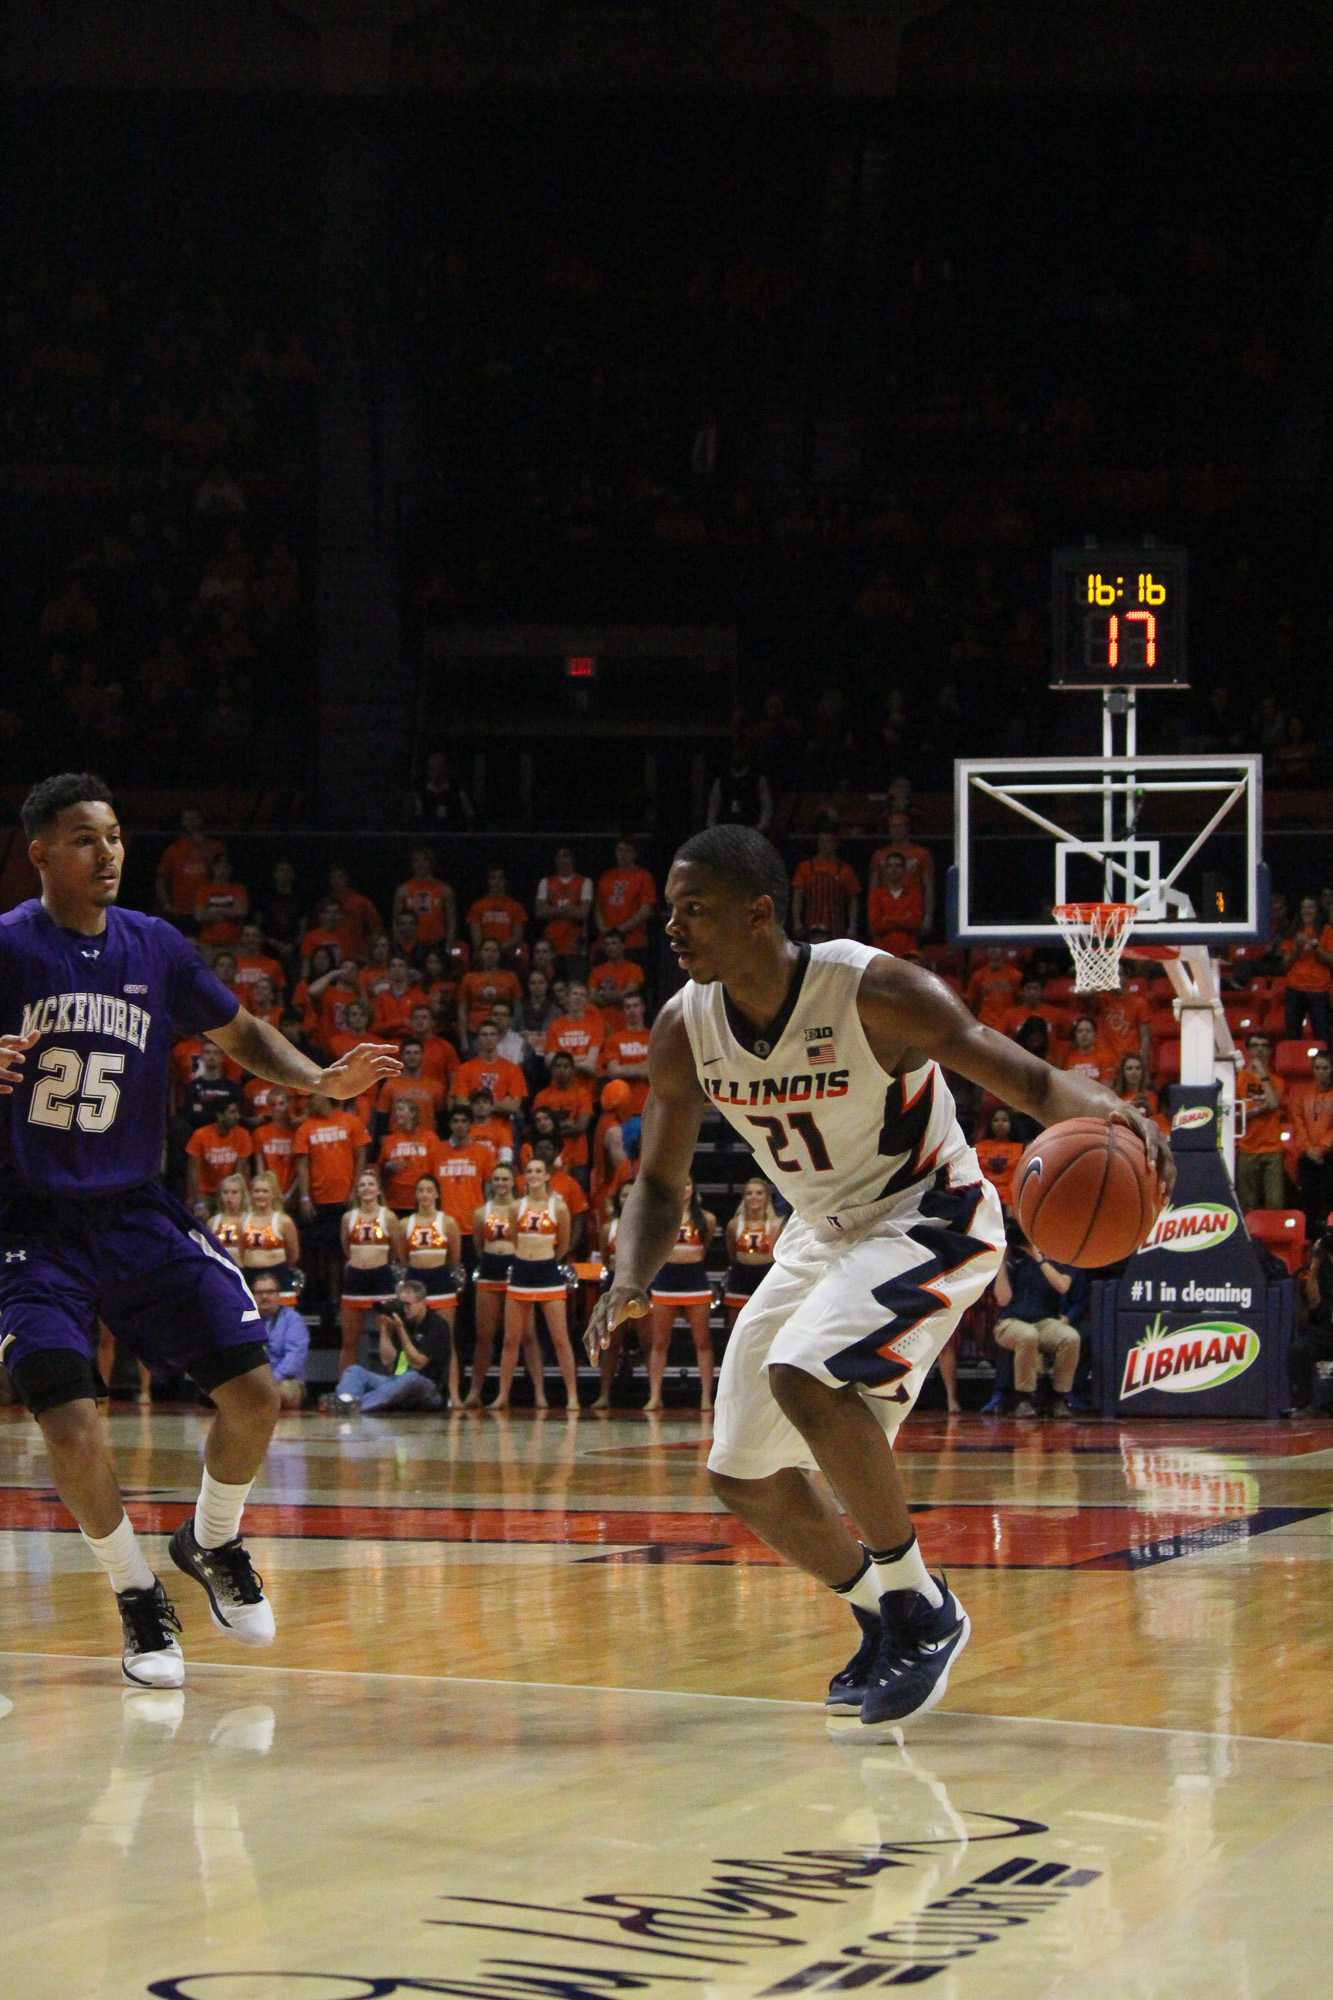 Malcolm Hill dribbles against McKendree. The Illini went 0-3 over Thanksgiving break.